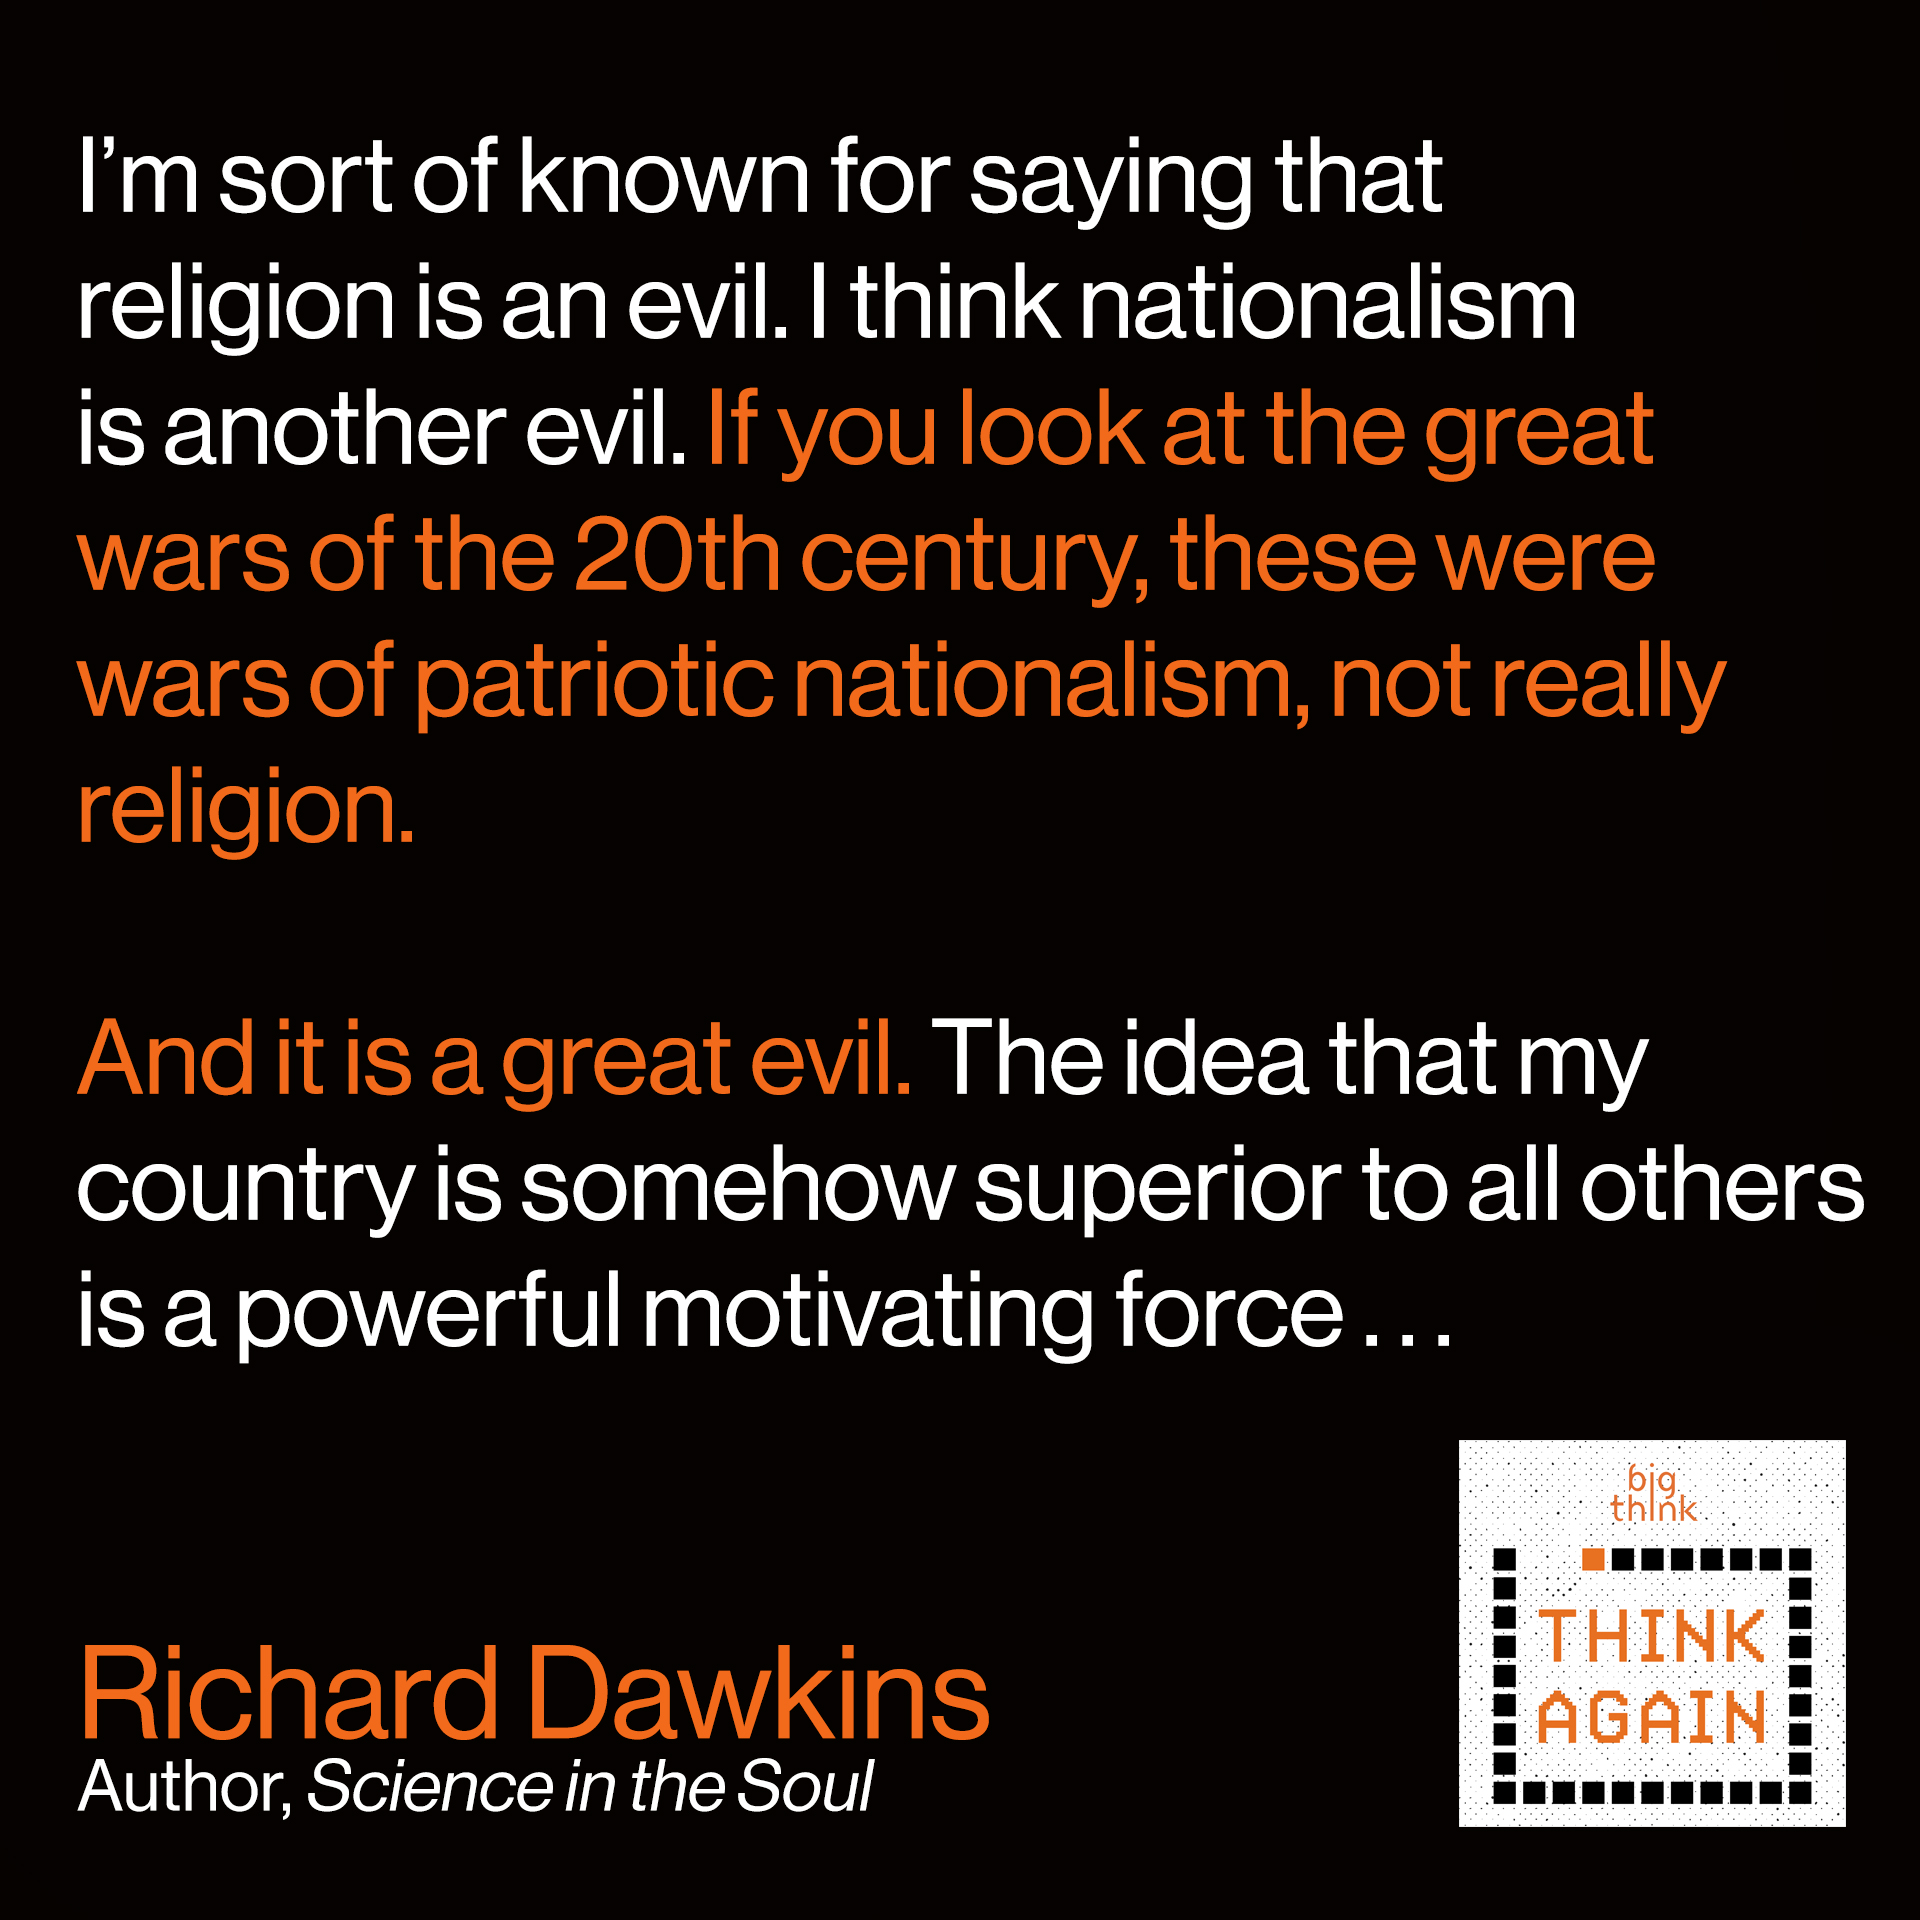 "Richard Dawkins Quote: ""I'm sort of known for saying that religion is an evil. I think nationalism is another evil. If you look at the great wars of the 20th century, these were wars of patriotic nationalism, not really religion. And it is a great evil. The idea that my country is somehow superior to all others is a motivating force . . ."""